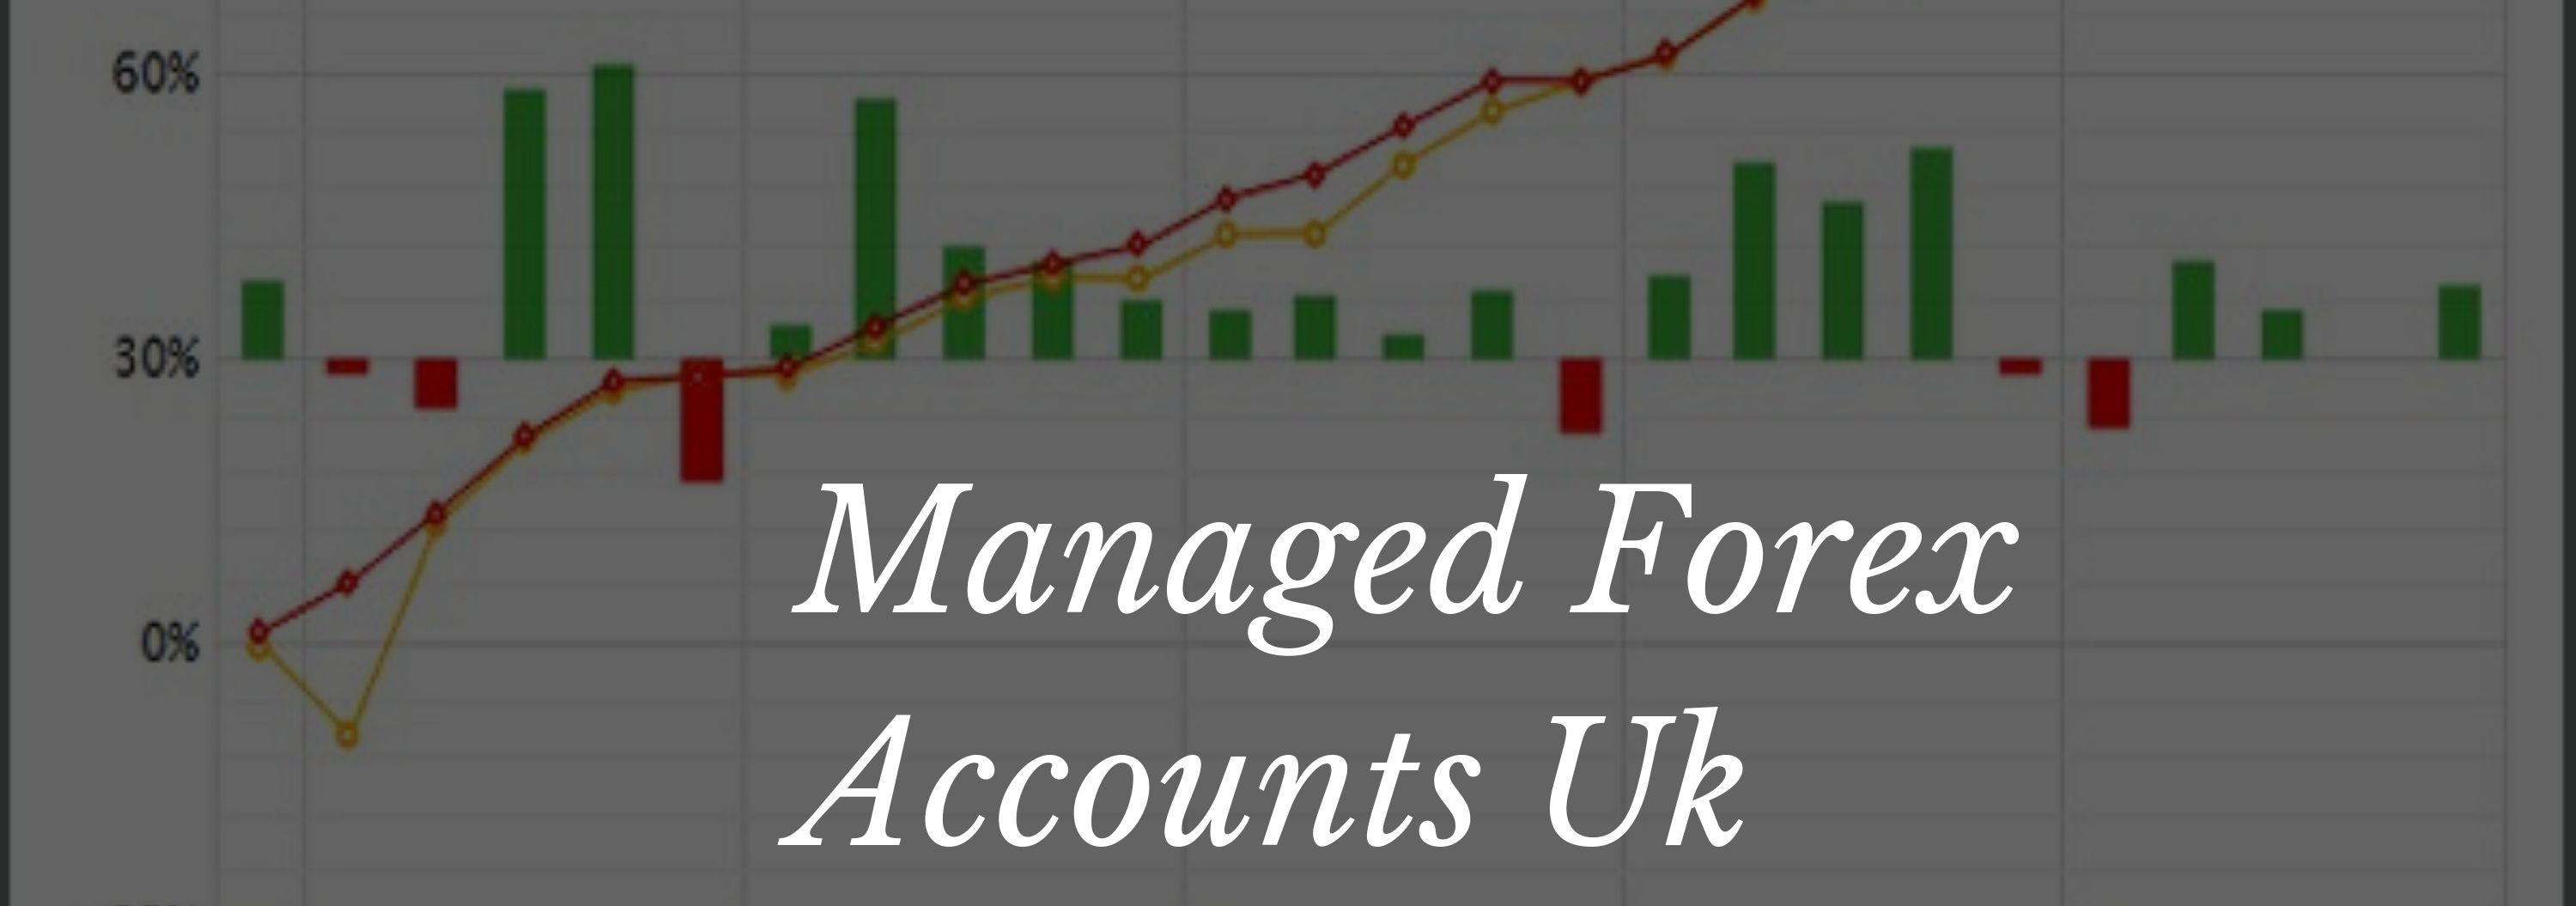 Pin By Joshuafaris On Managed Forex Accounts Uk Safe Investments